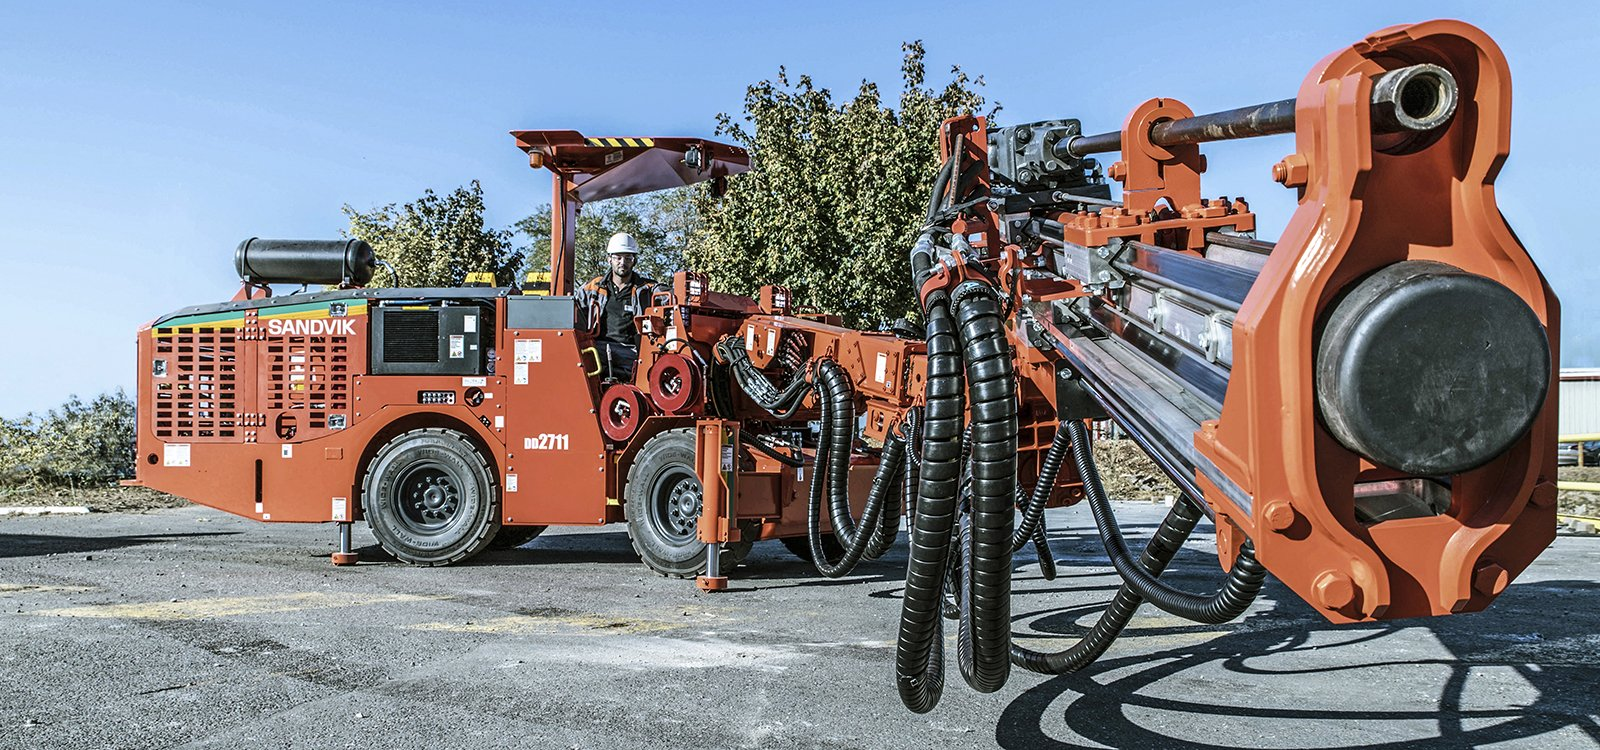 <p>The Sandvik 2711 class are a new family of narrow-vein drills.</p>